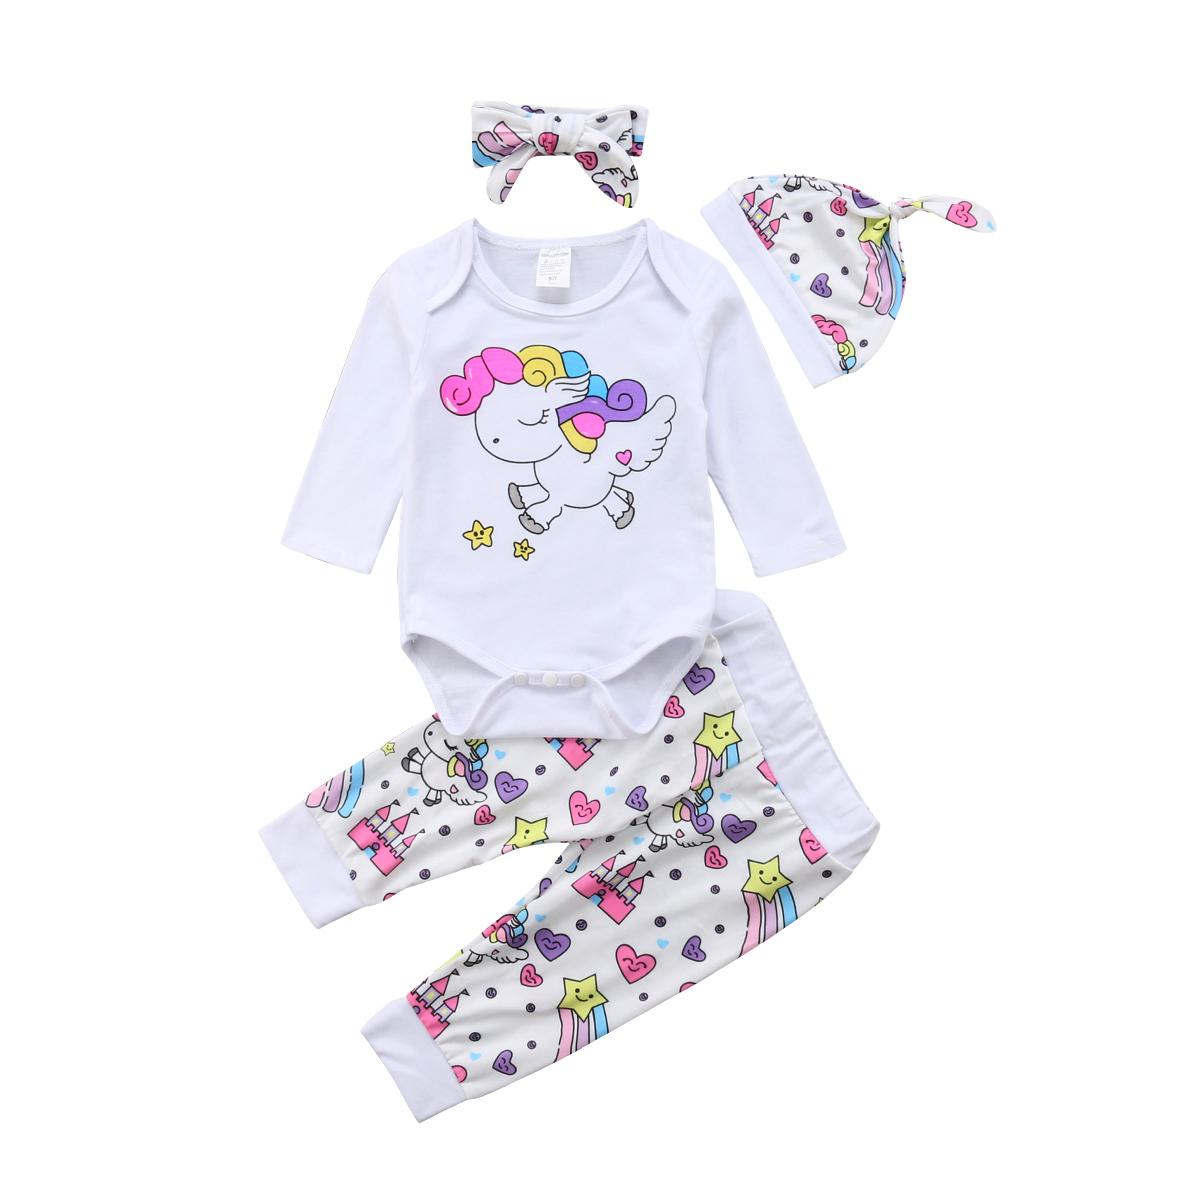 659d7bc329ac 2019 Cute Newborn Infant Baby Girl Unicorn Cartoon Tops Long Sleeve Romper  Long Pants Hat Headband Outfits Clothes Set From Ycqz3